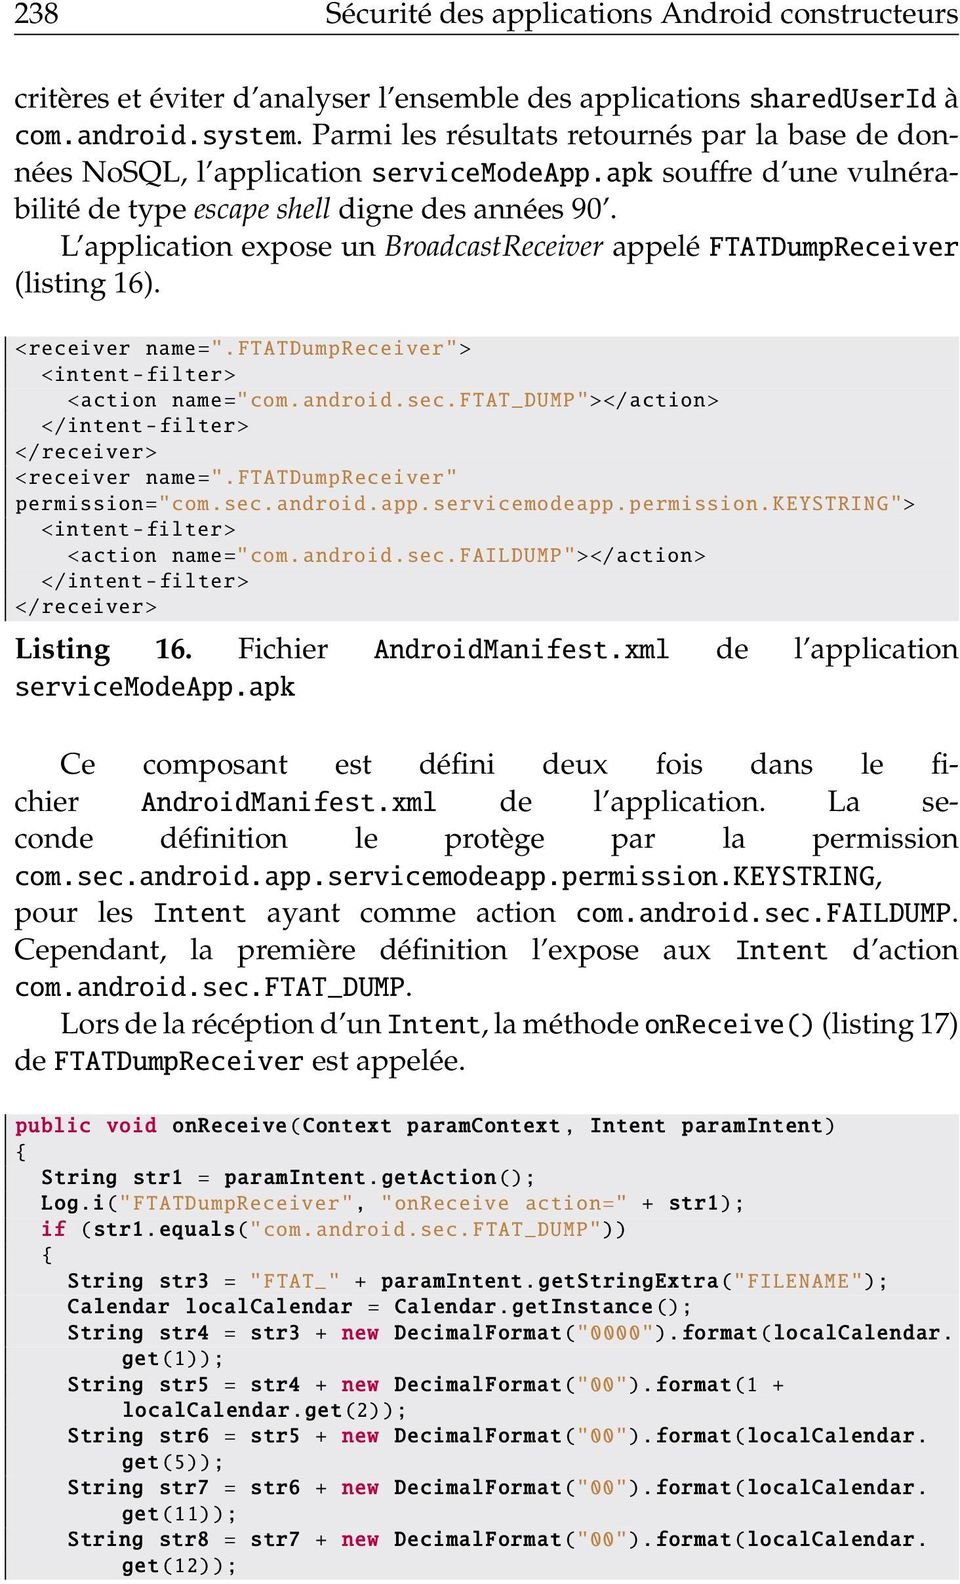 "L application expose un BroadcastReceiver appelé FTATDumpReceiver (listing 16). <receiver name="". FTATDumpReceiver""> <intent -filter> <action name=""com.android.sec."